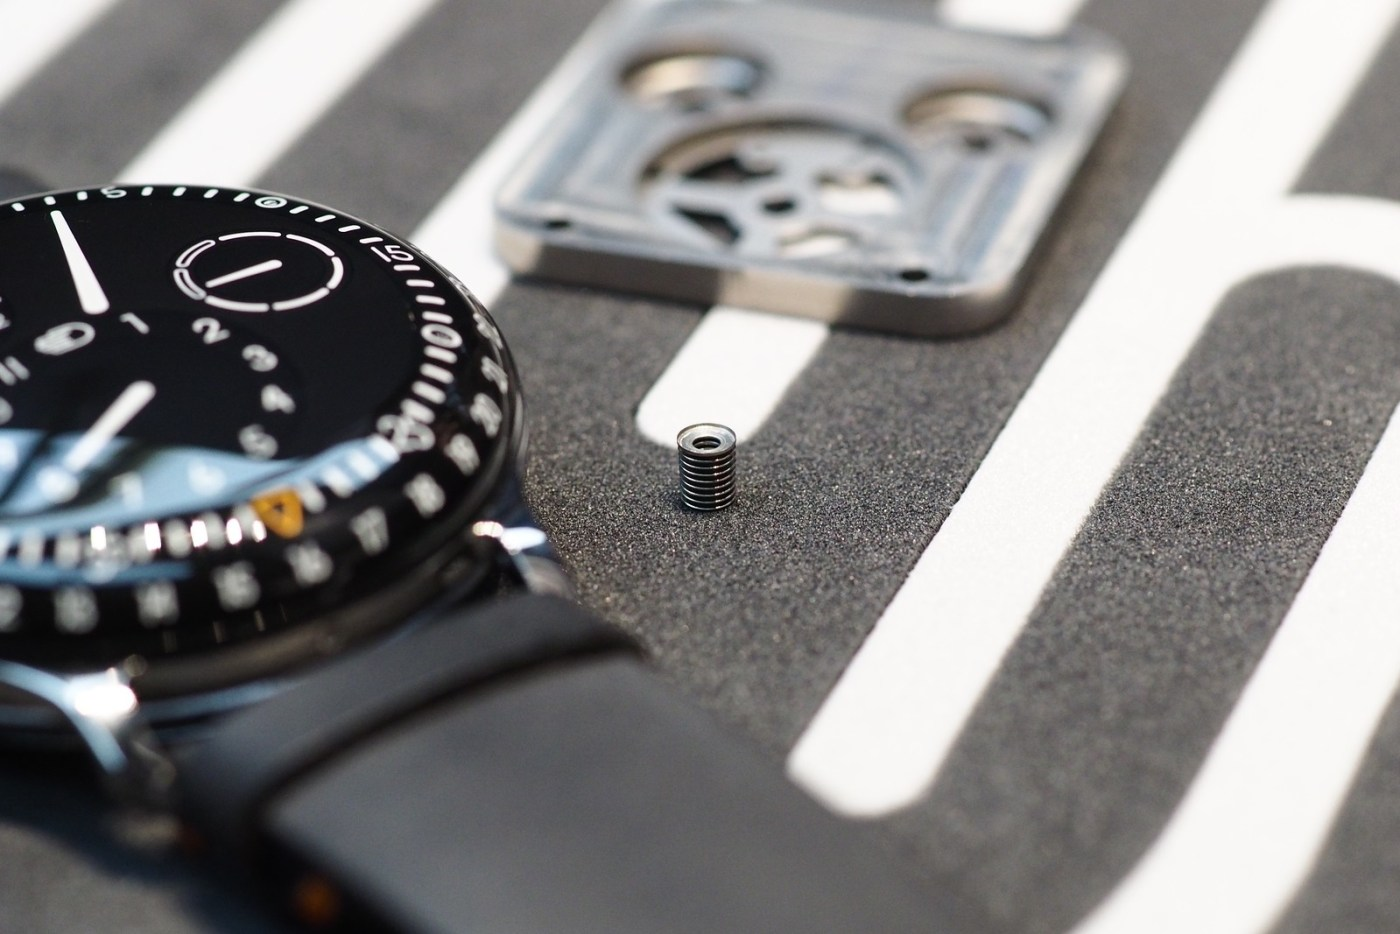 Ressence Type components